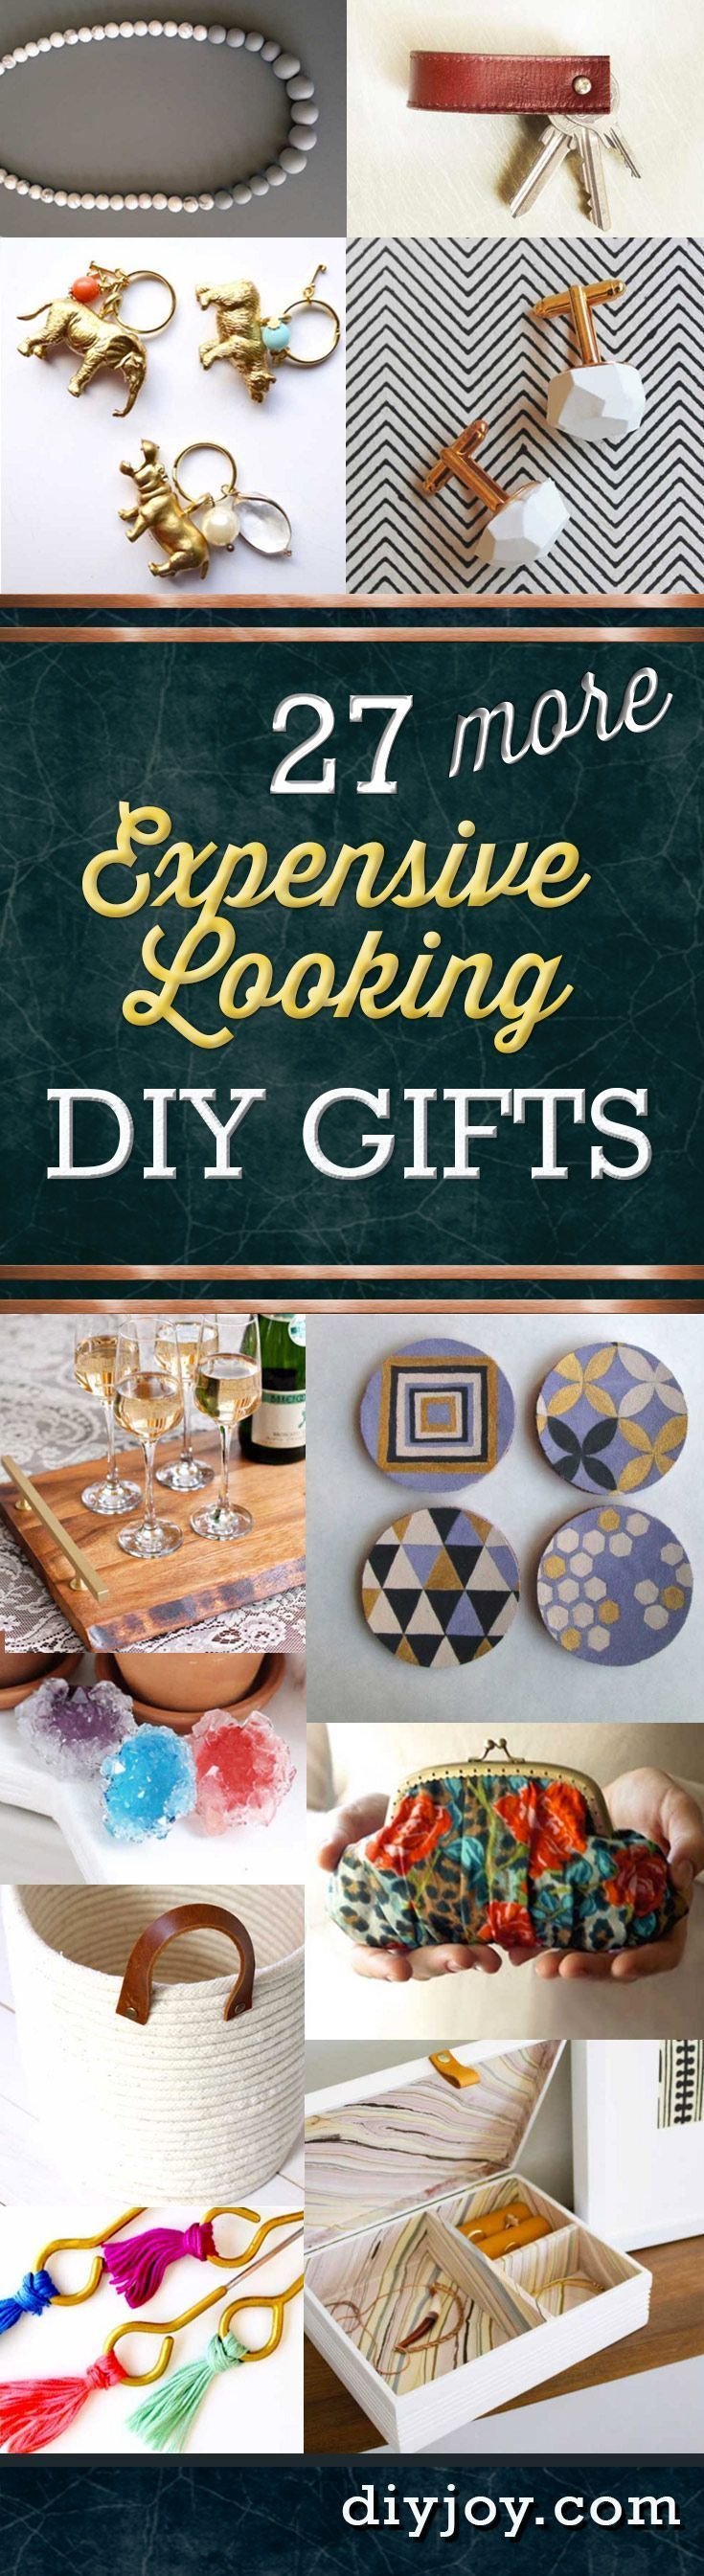 27 MORE Expensive Looking DIY Gifts. Crafts and DIY Gift Ideas for Him, for…